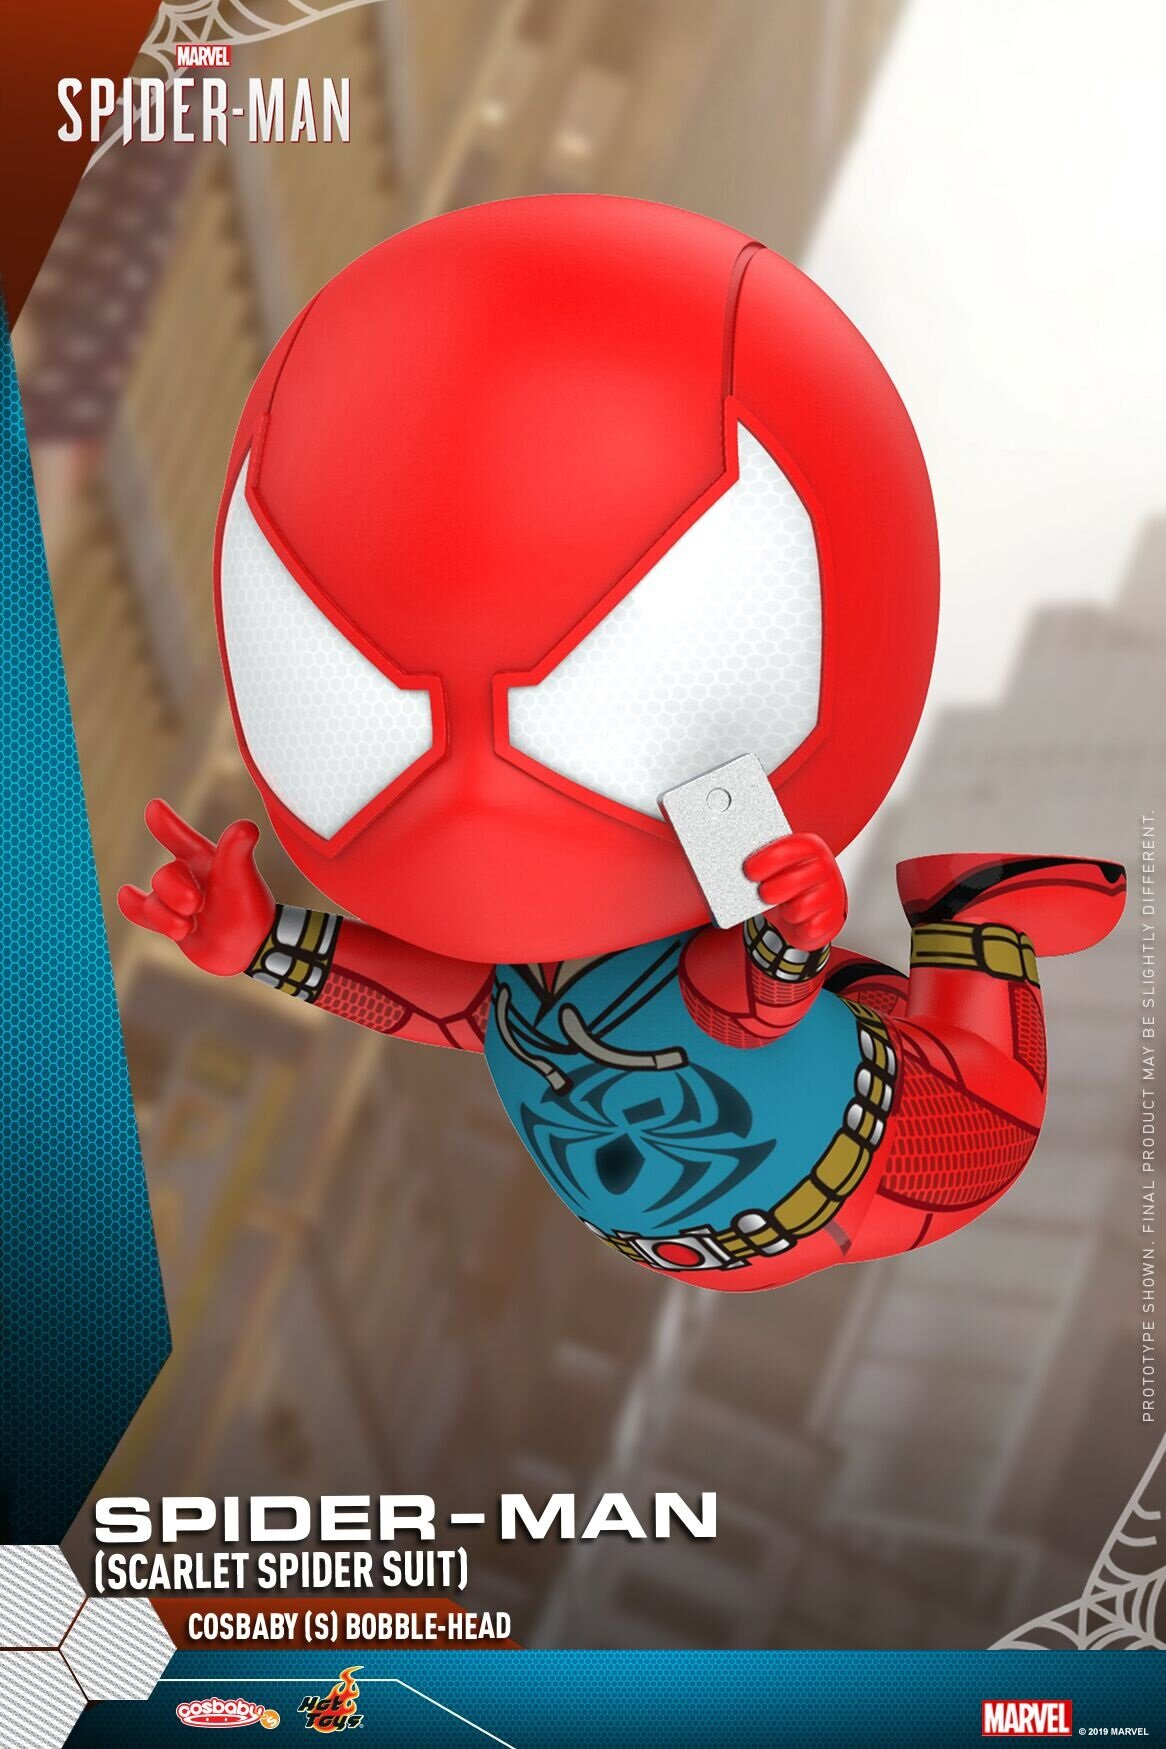 [Hot Toys] 코스베이비 스파이더맨 Scarlet Spider Suit Ver. COSB620